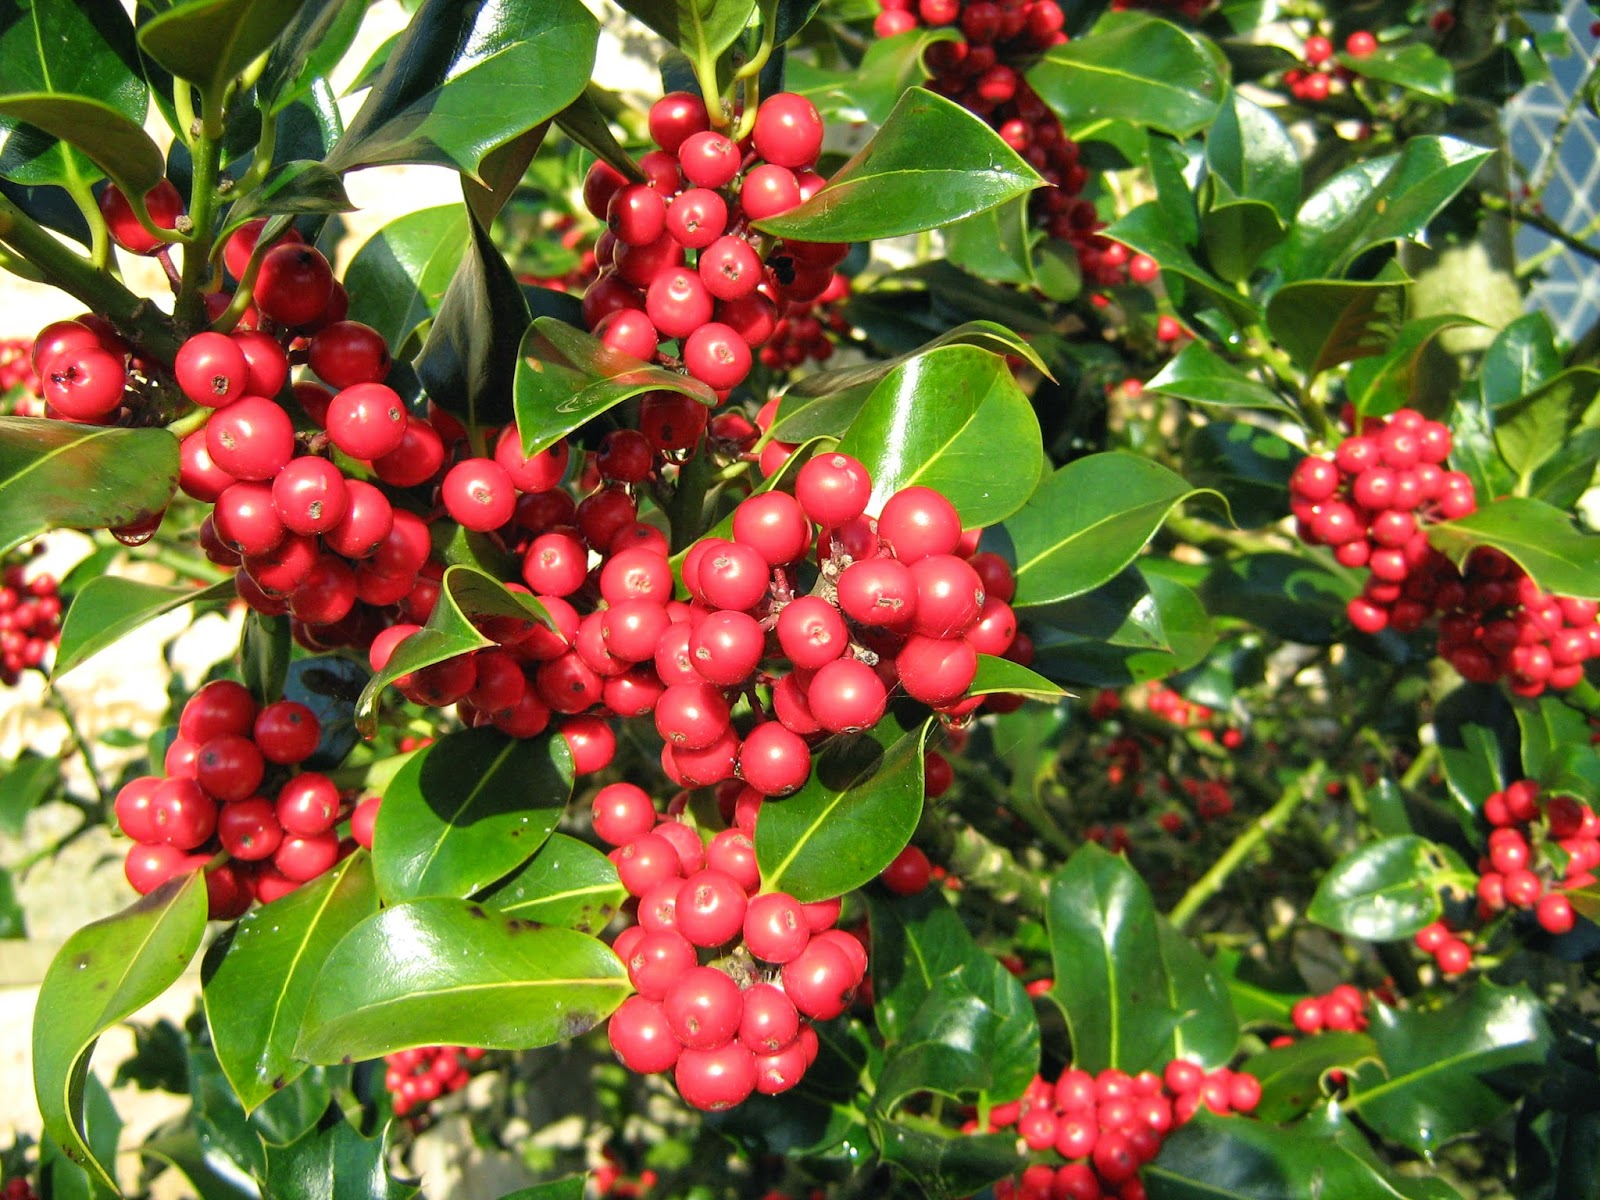 Photo of holly berries in Trowbridge